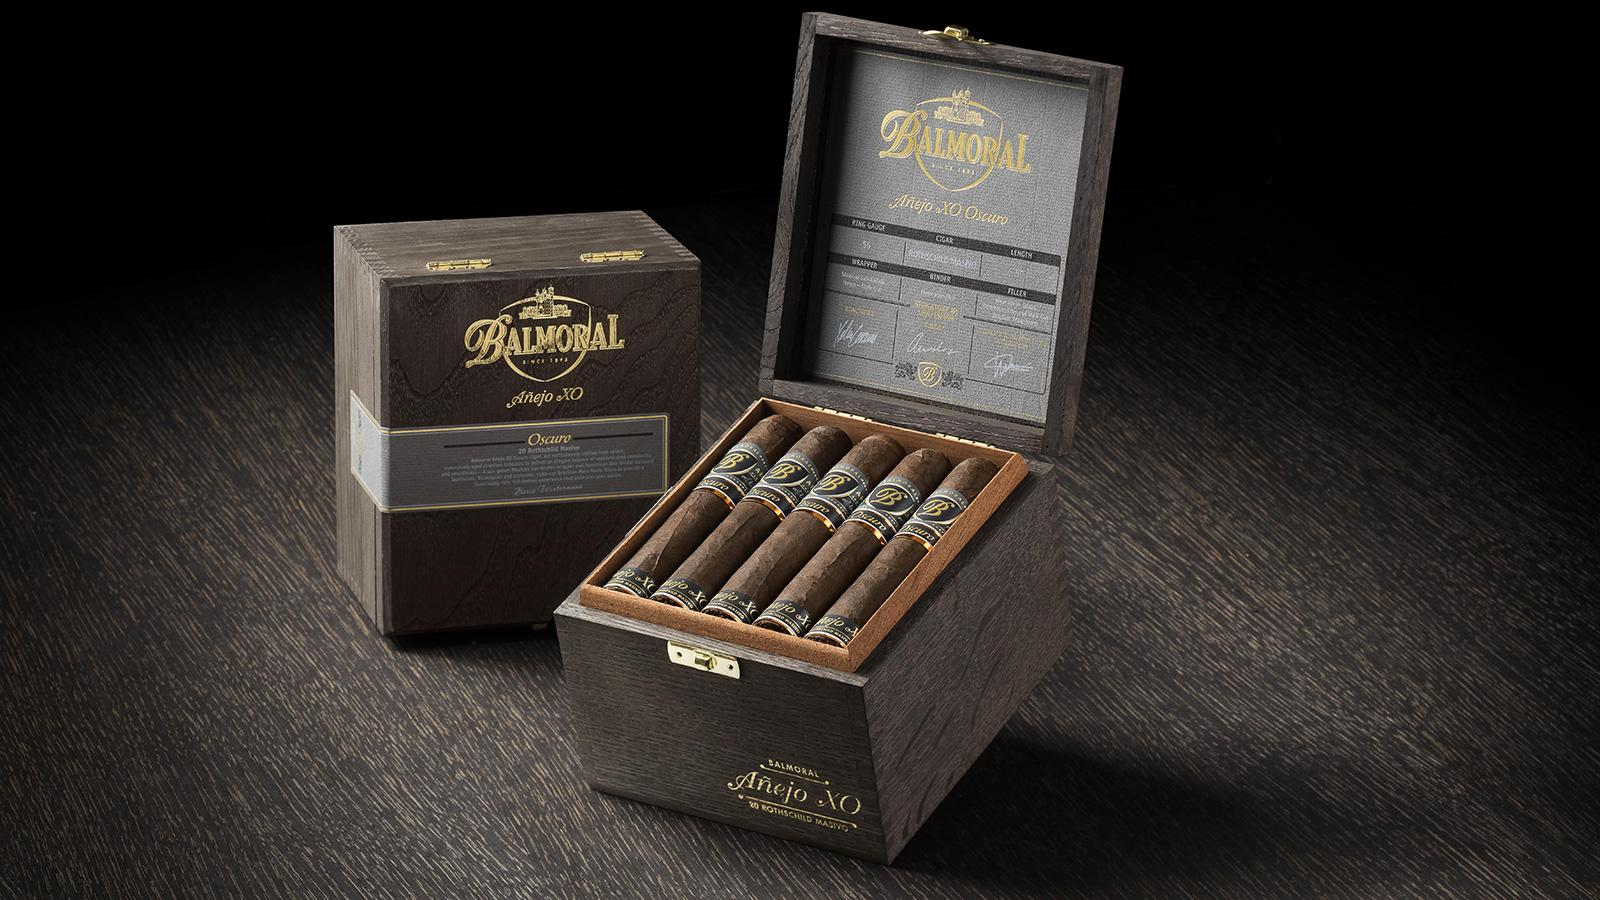 Balmoral Añejo XO Oscuro has a Mexican San Andrés wrapper, Dominican binder and filler from Nicaragua, the Dominican Republic and Brazil.